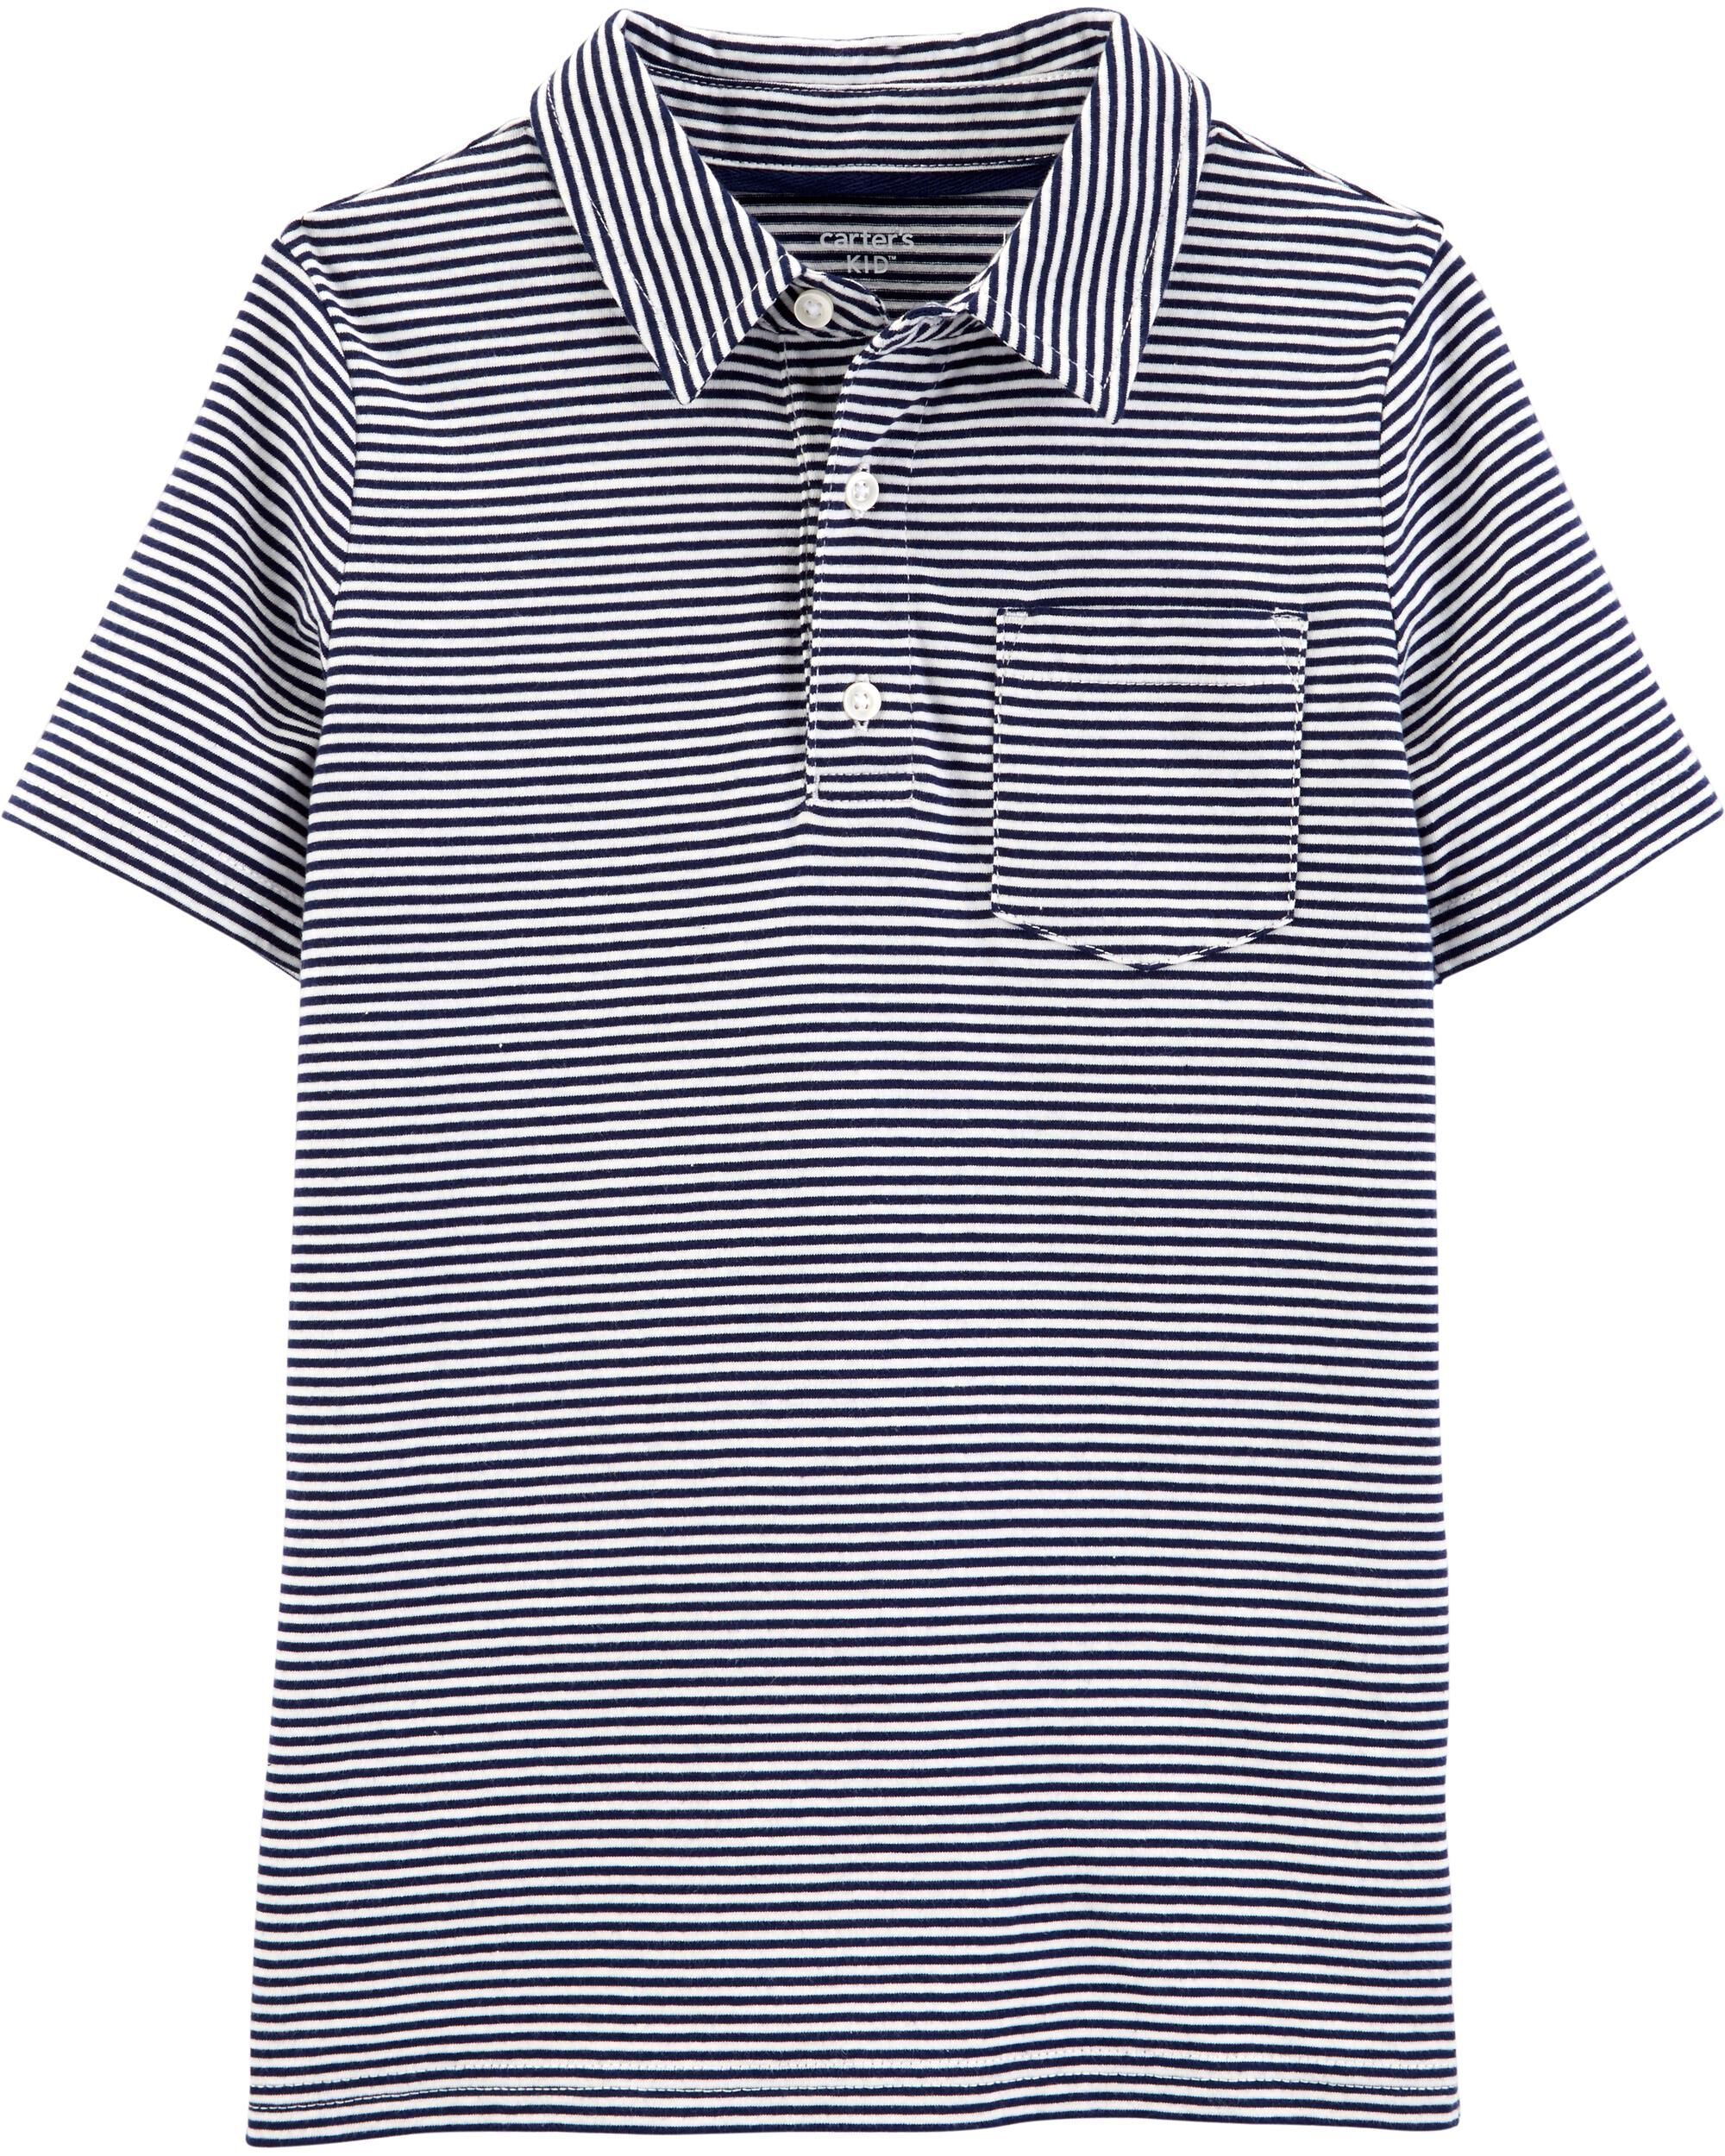 *DOORBUSTER* Striped Jersey Polo